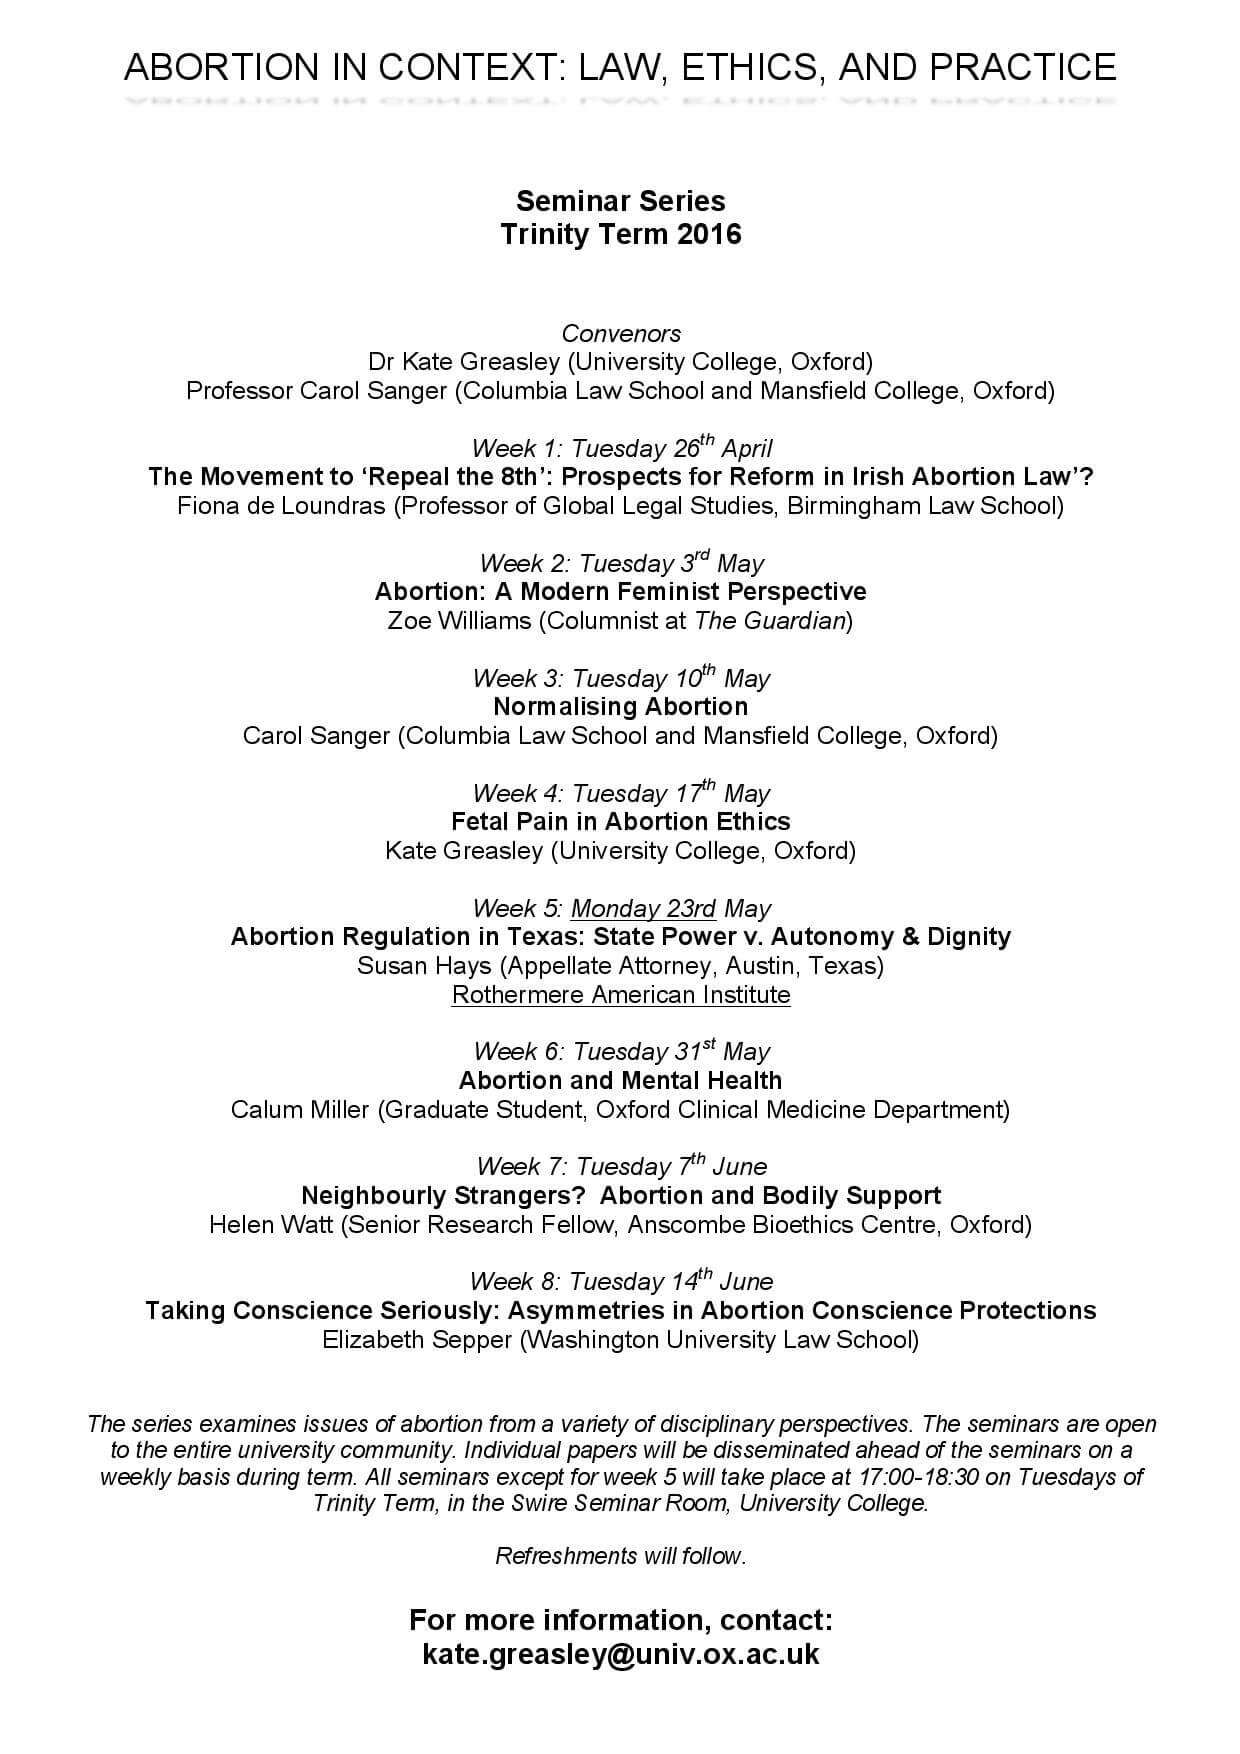 Oxford University Seminar Series: Abortion in Context, Law, Ethics and Practice